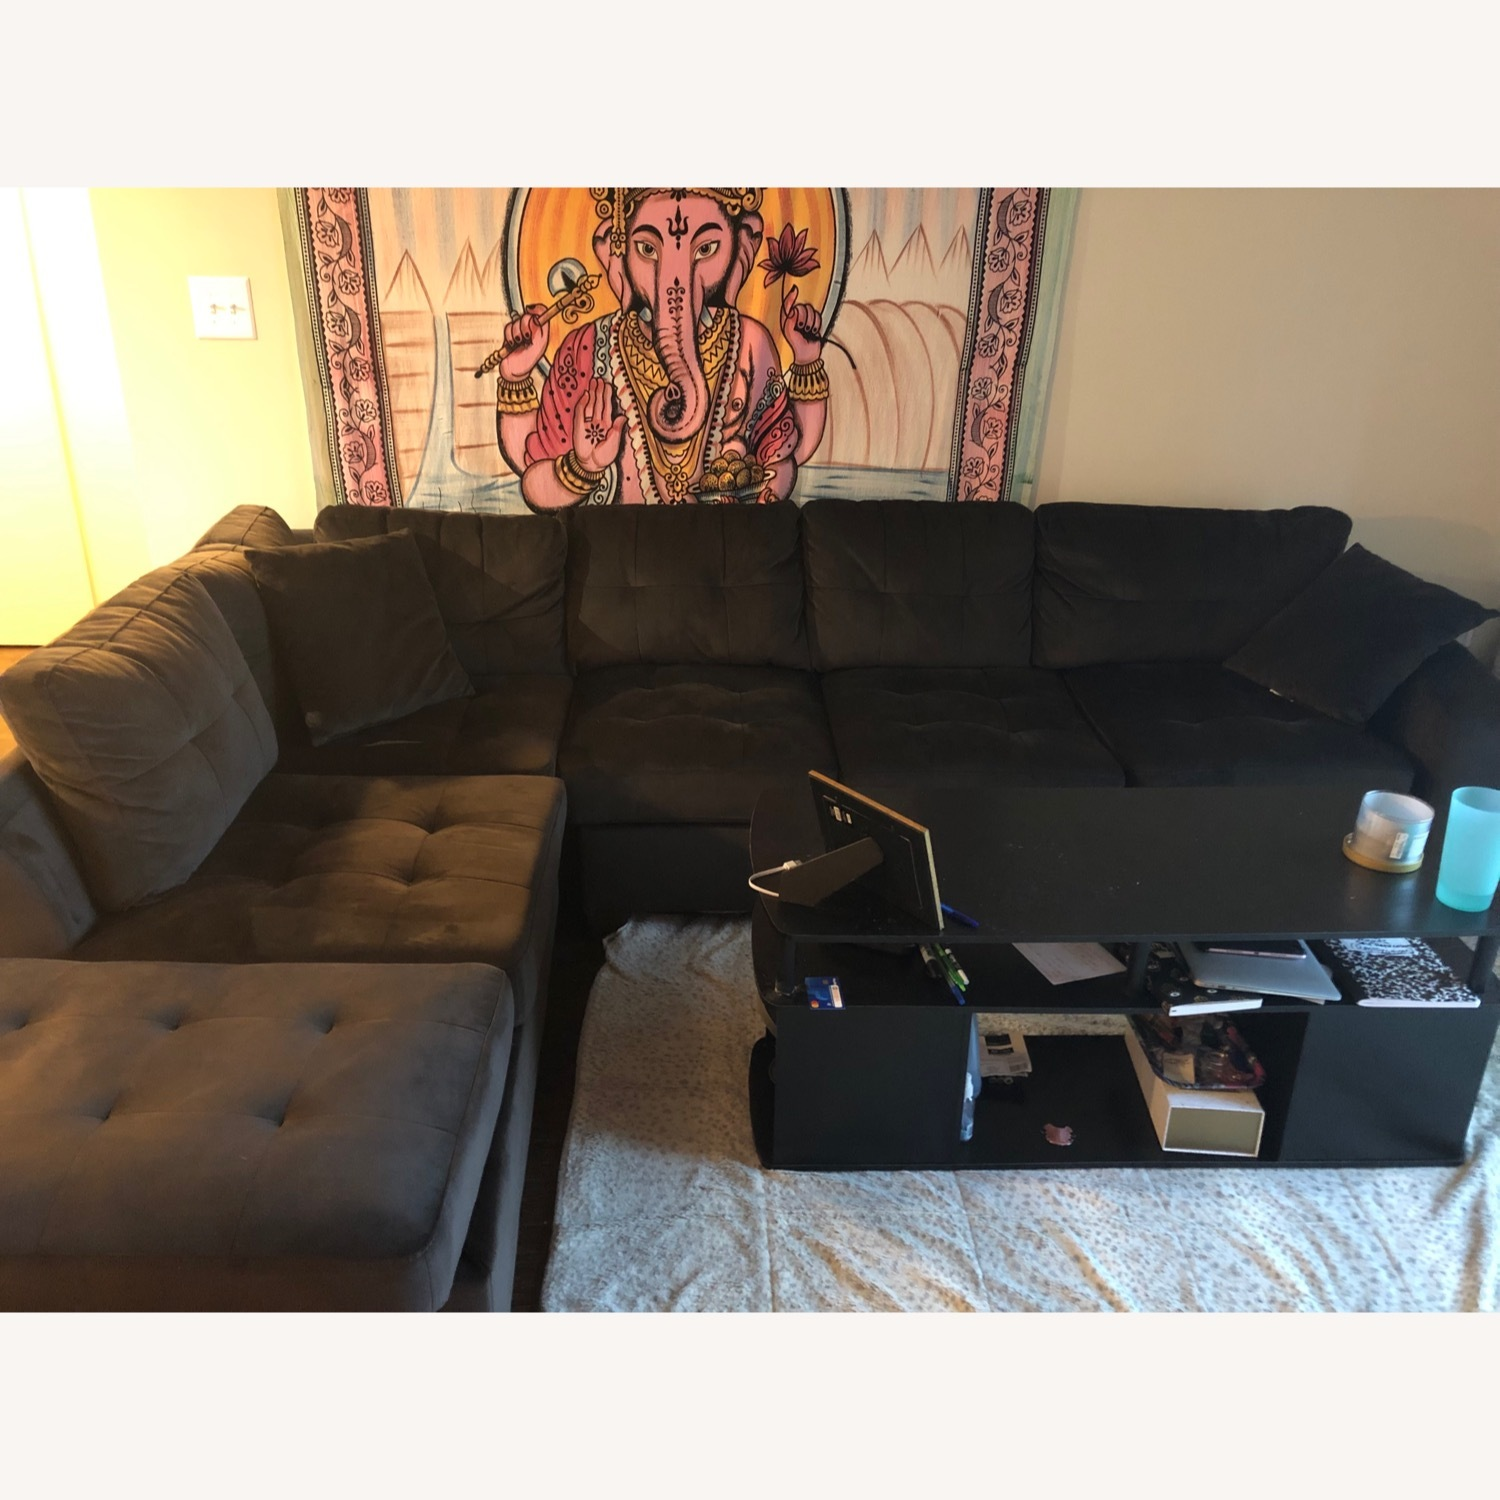 Wayfair 2 Piece Sectional Couch - image-1